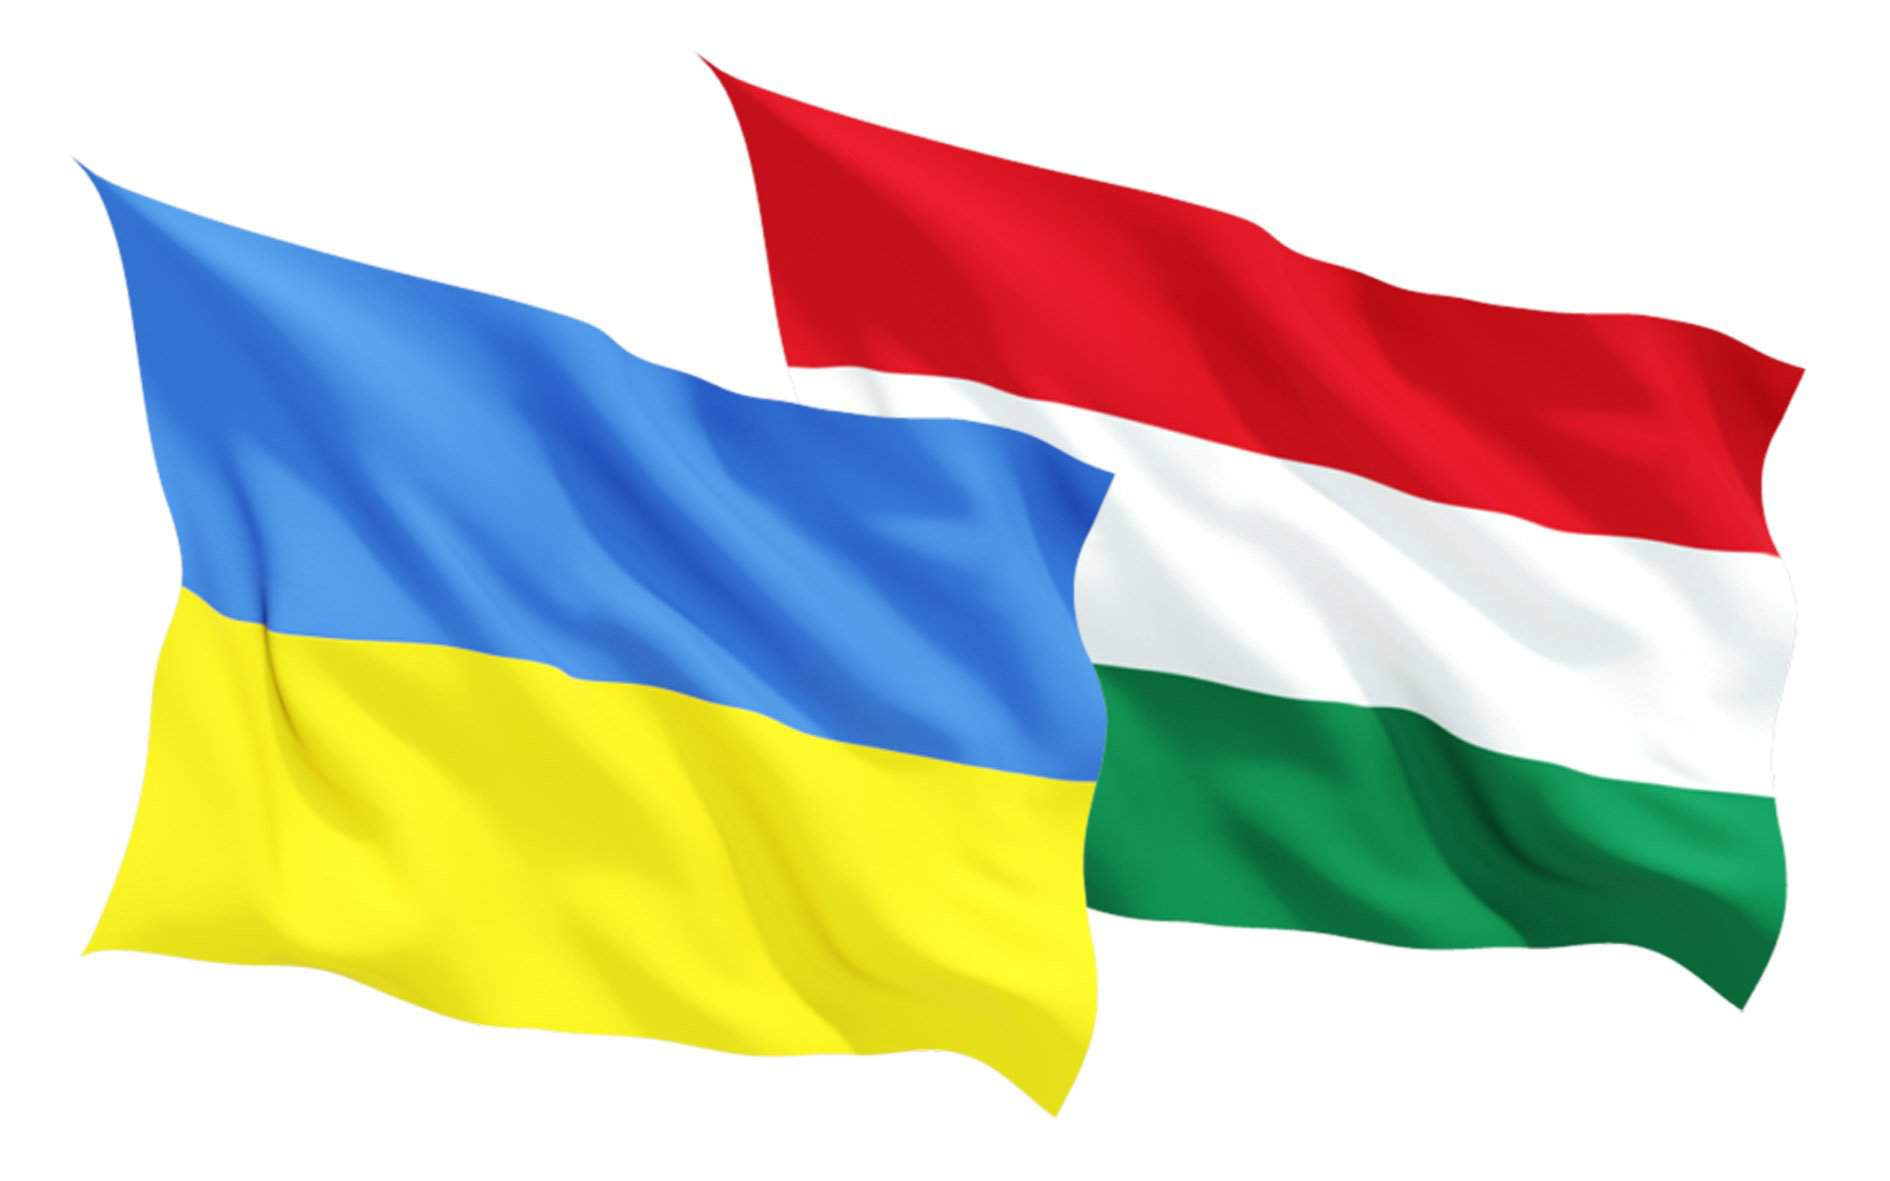 Hungary condemns Ukraine's attempt to 'intimidate' Transcarpathia Hungarians